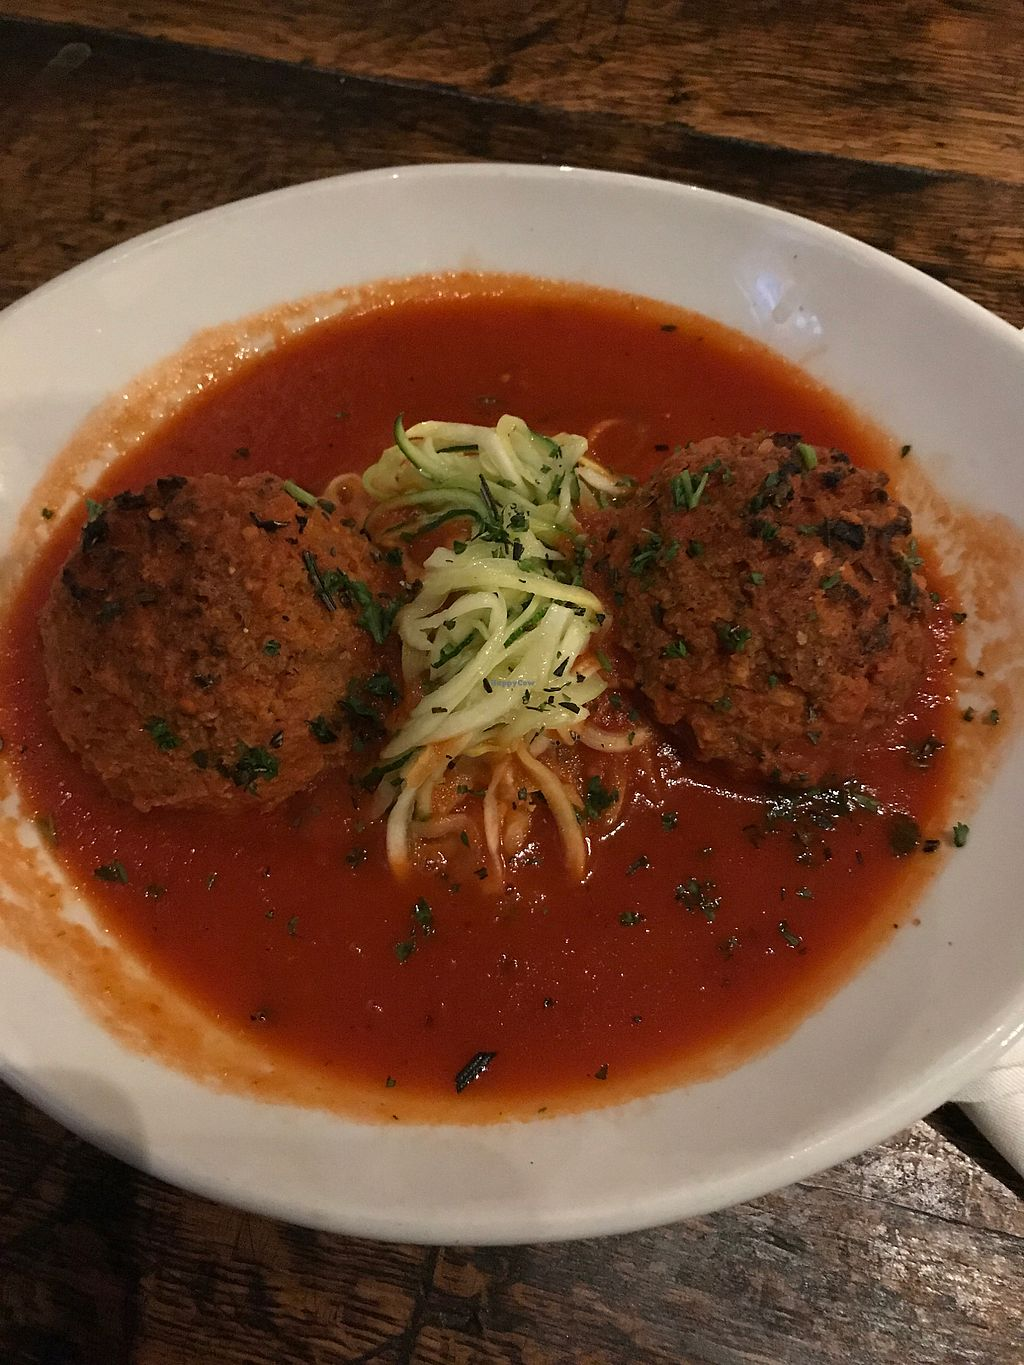 """Photo of 56 Kitchen  by <a href=""""/members/profile/MikeyK"""">MikeyK</a> <br/>Vegan Spaghetti and Meatballs  <br/> October 23, 2017  - <a href='/contact/abuse/image/78966/317916'>Report</a>"""